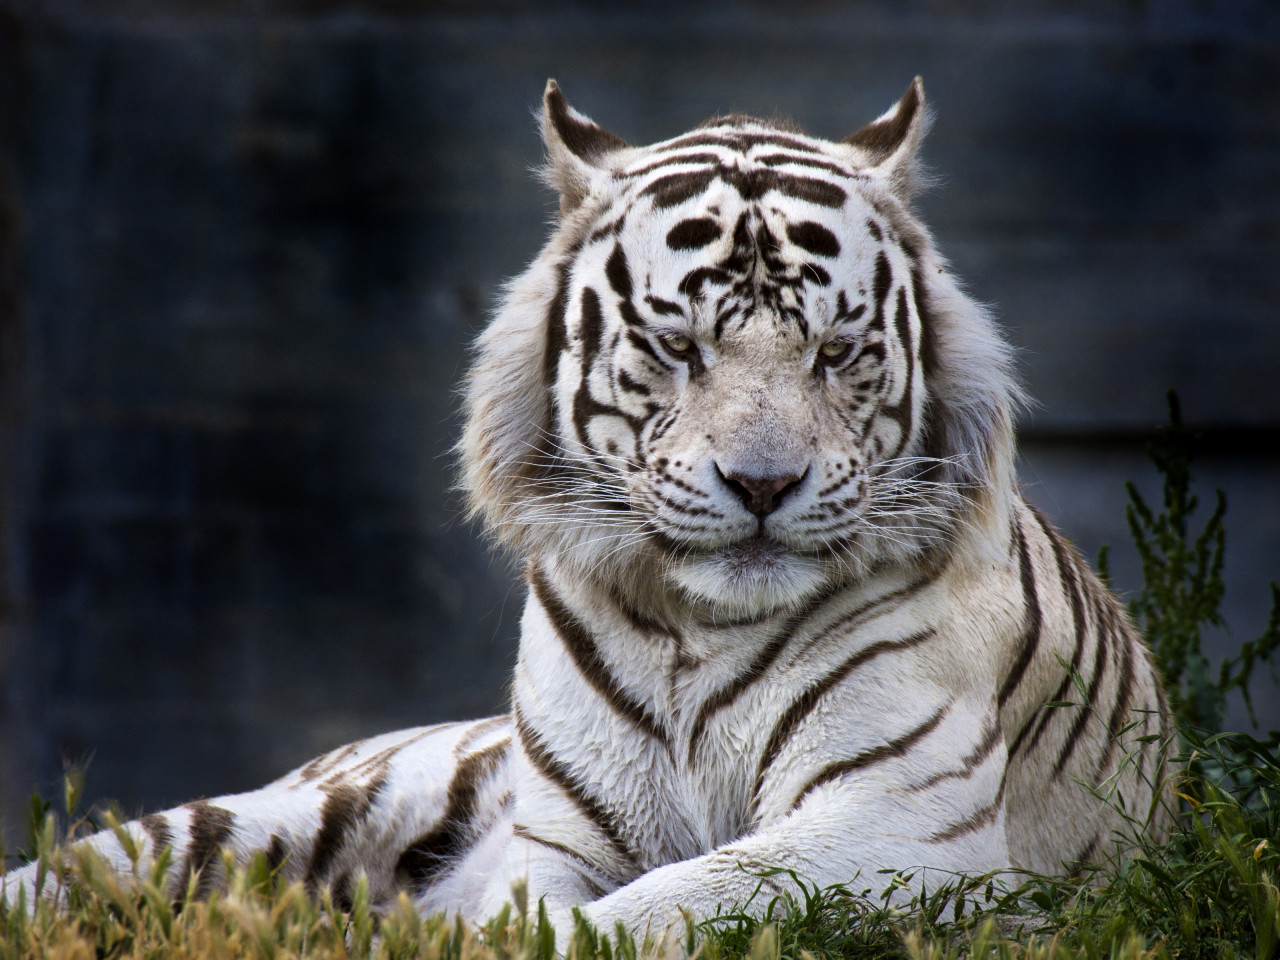 The white tiger from Madrid Zoo wallpaper 1280x960